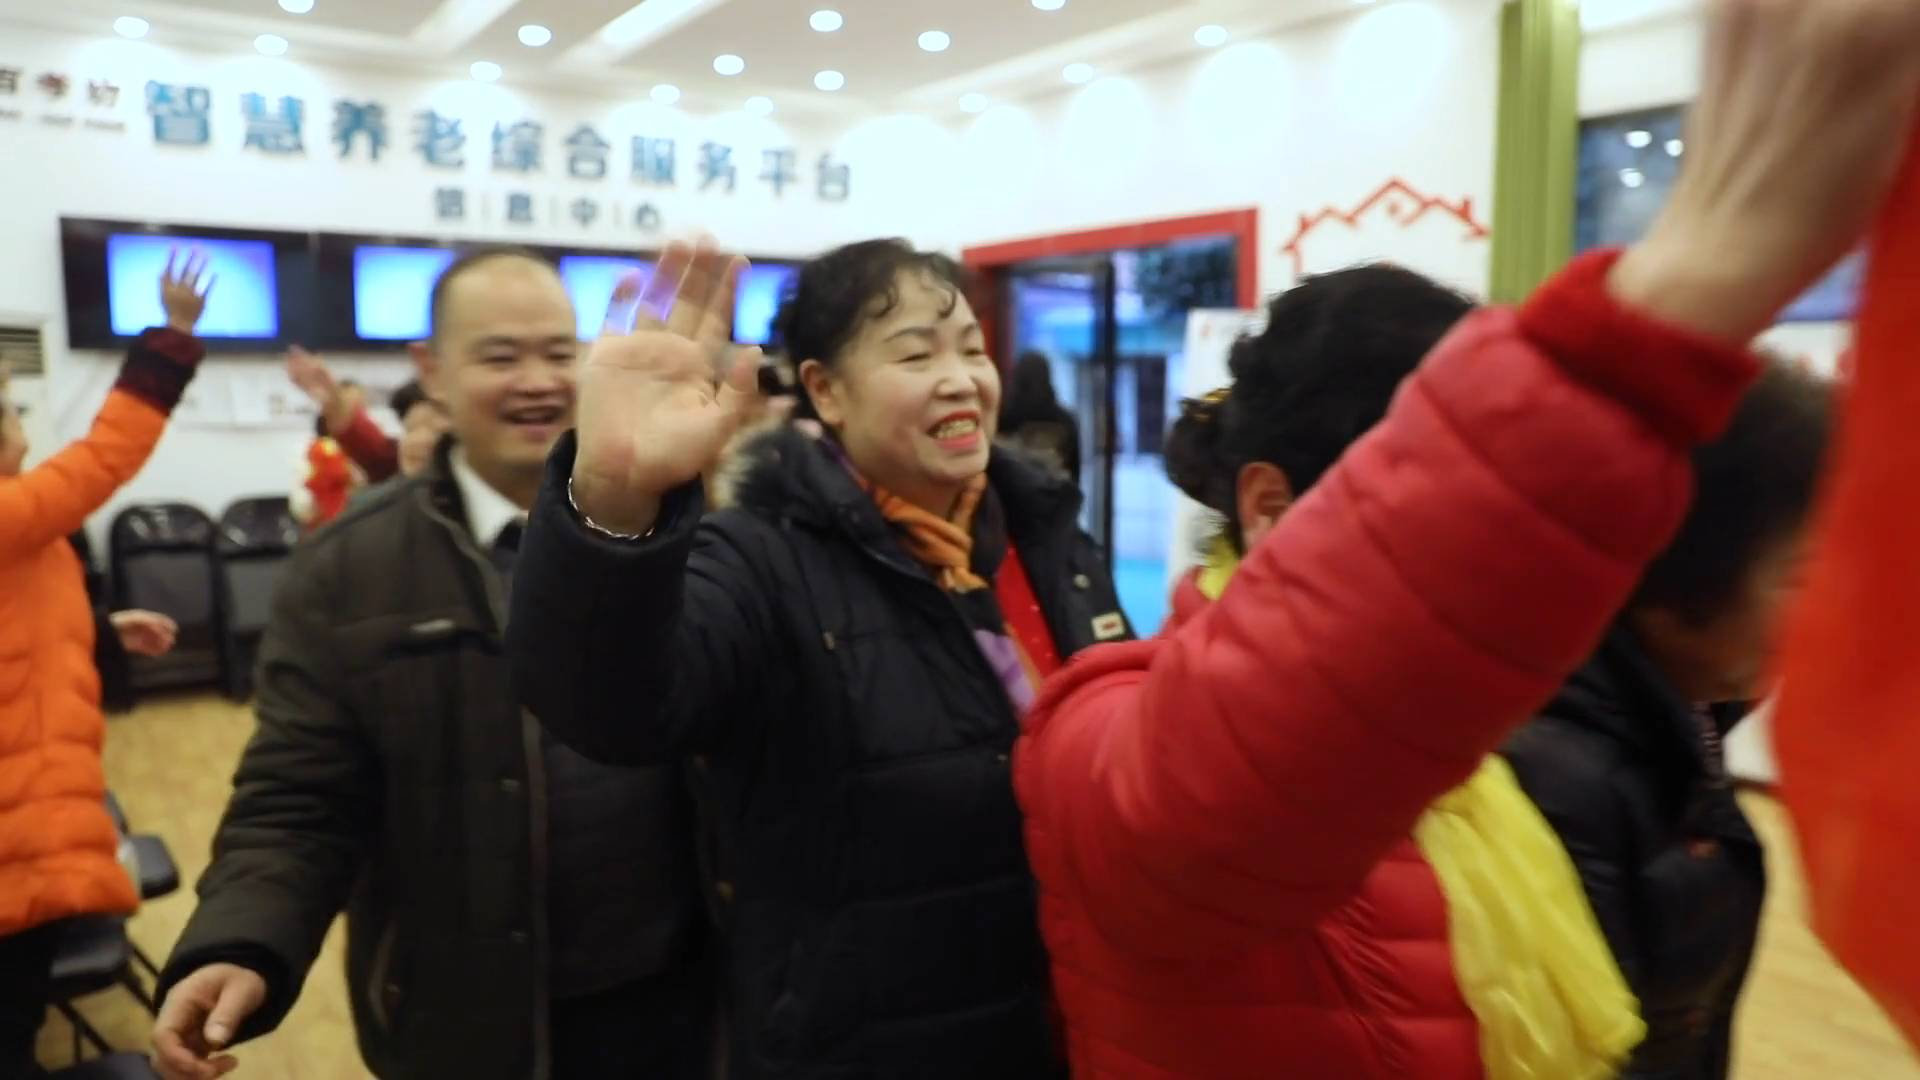 Highlights of China's elderly care over past 5 years